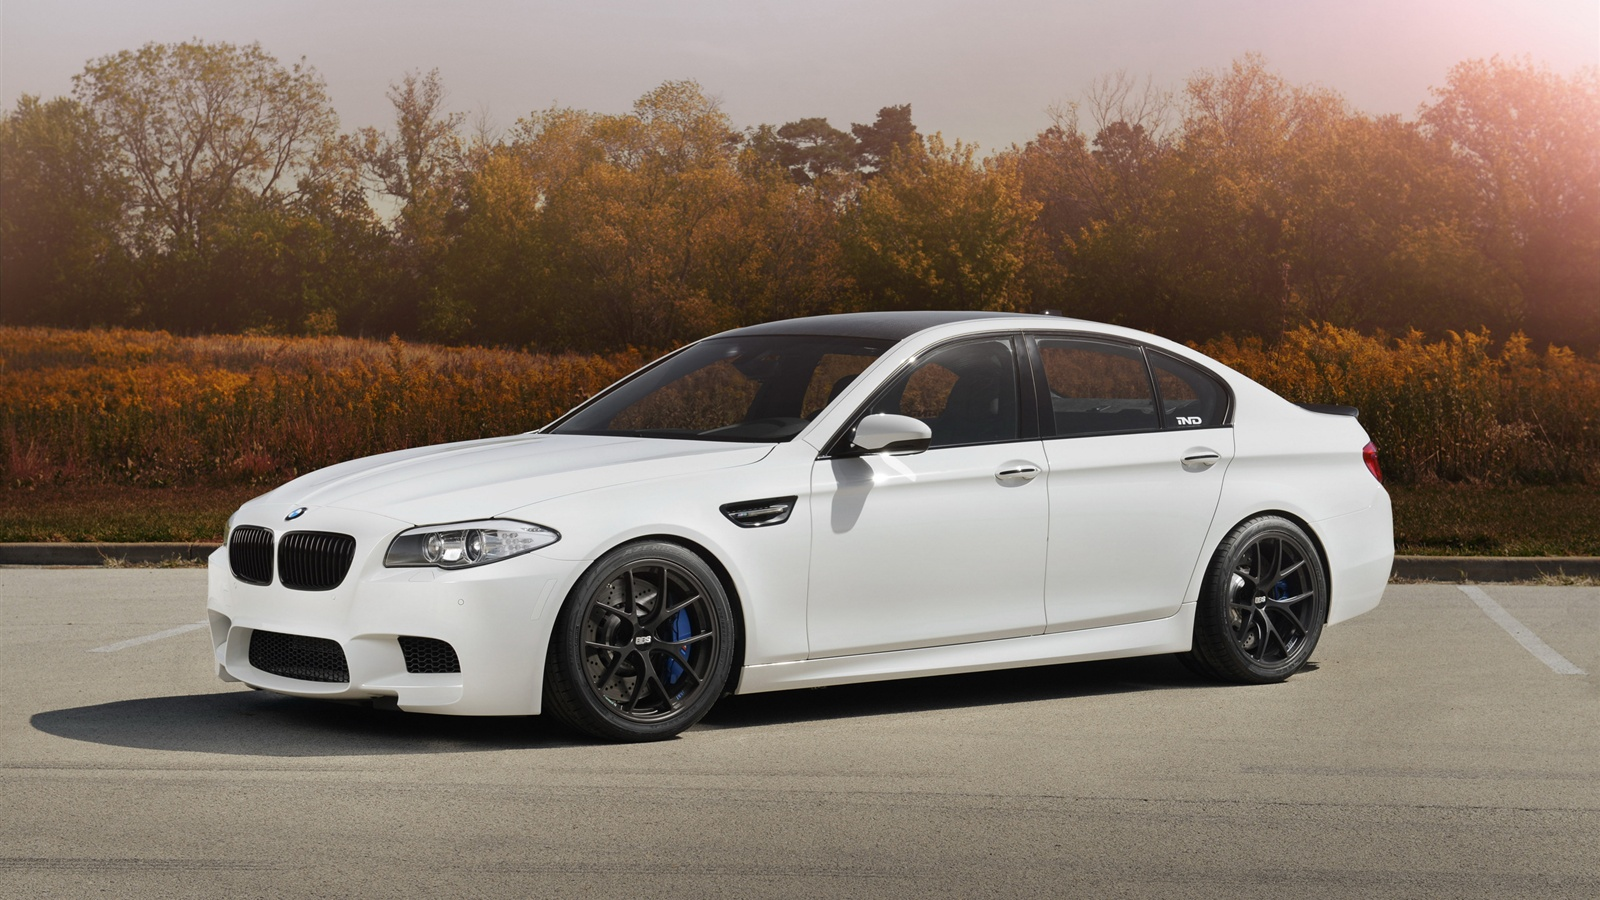 BMW M5 F10 White Car